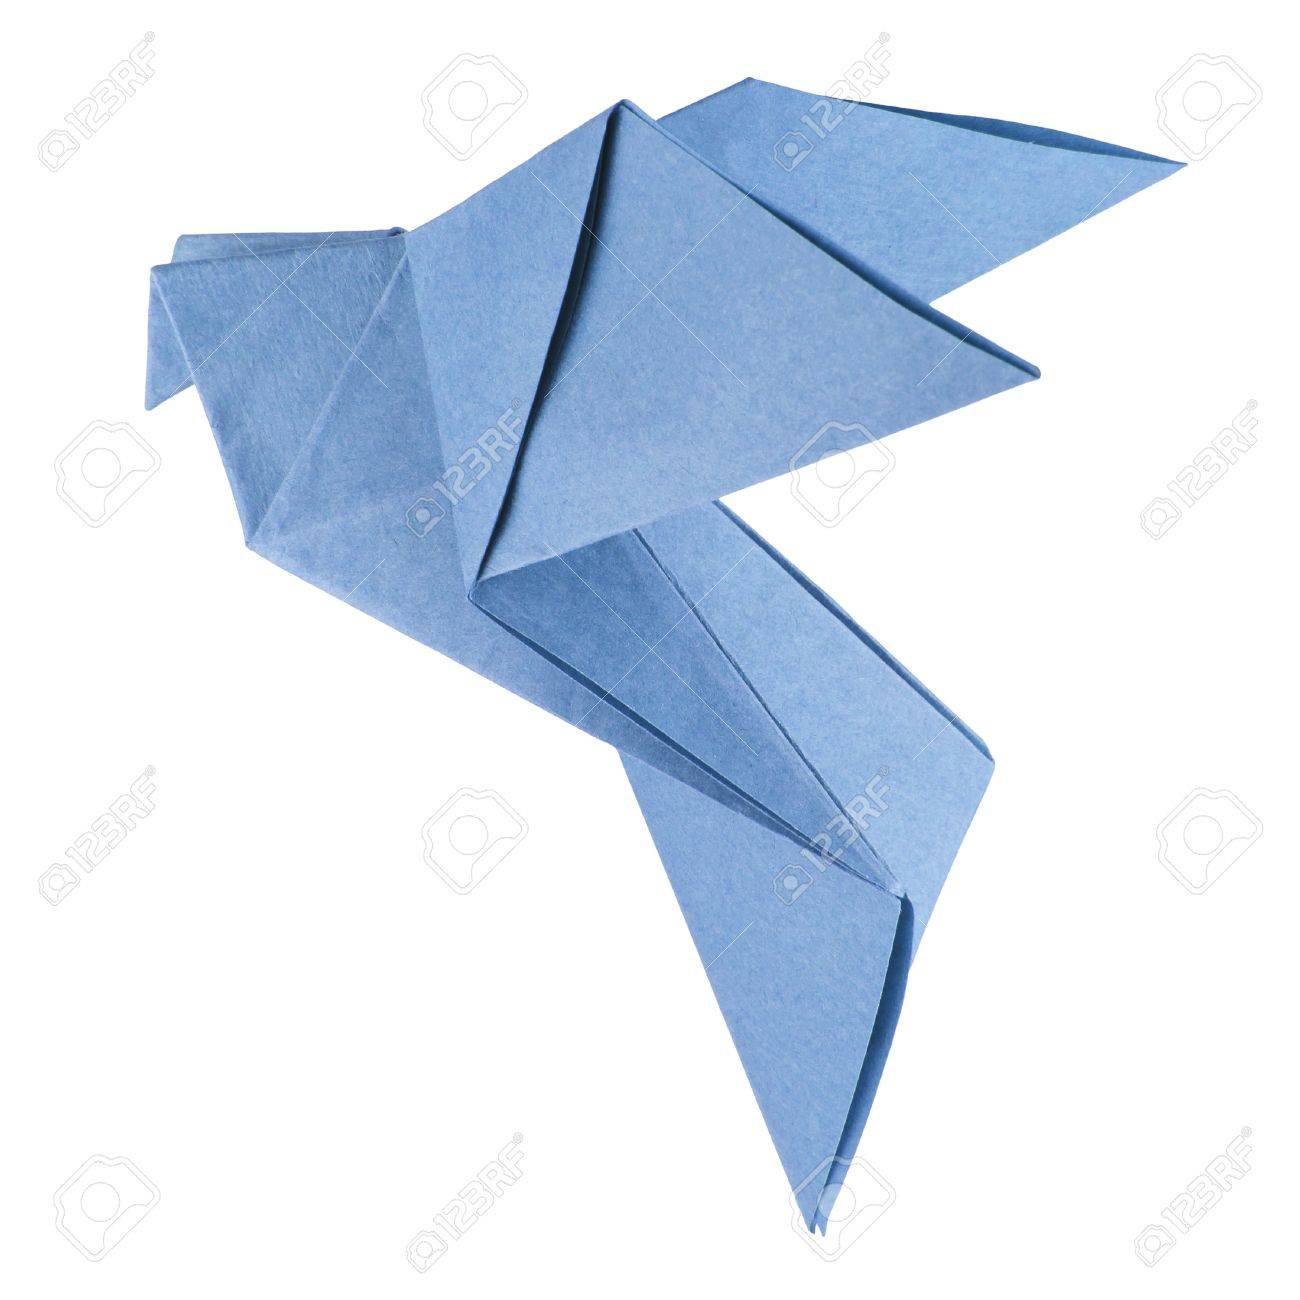 isolated origami dove on the white background Stock Photo - 14091932